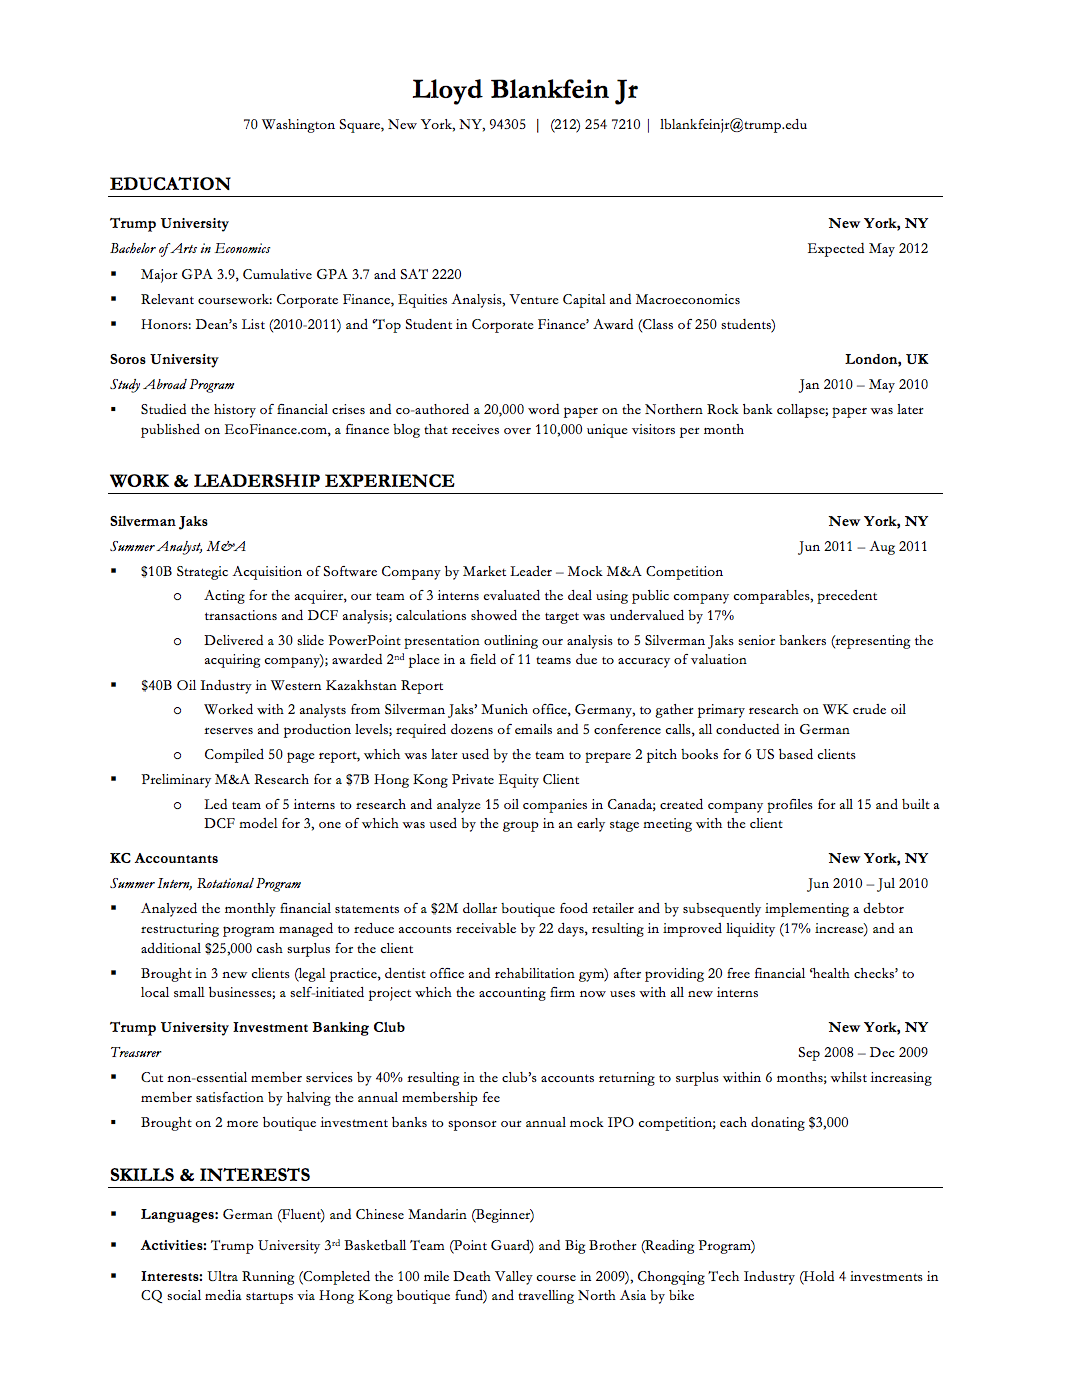 Investment Banker Resume Sample Fancy Plush Design Mergers And Inquisitions Resume  Template 1 .  Banking Resume Template